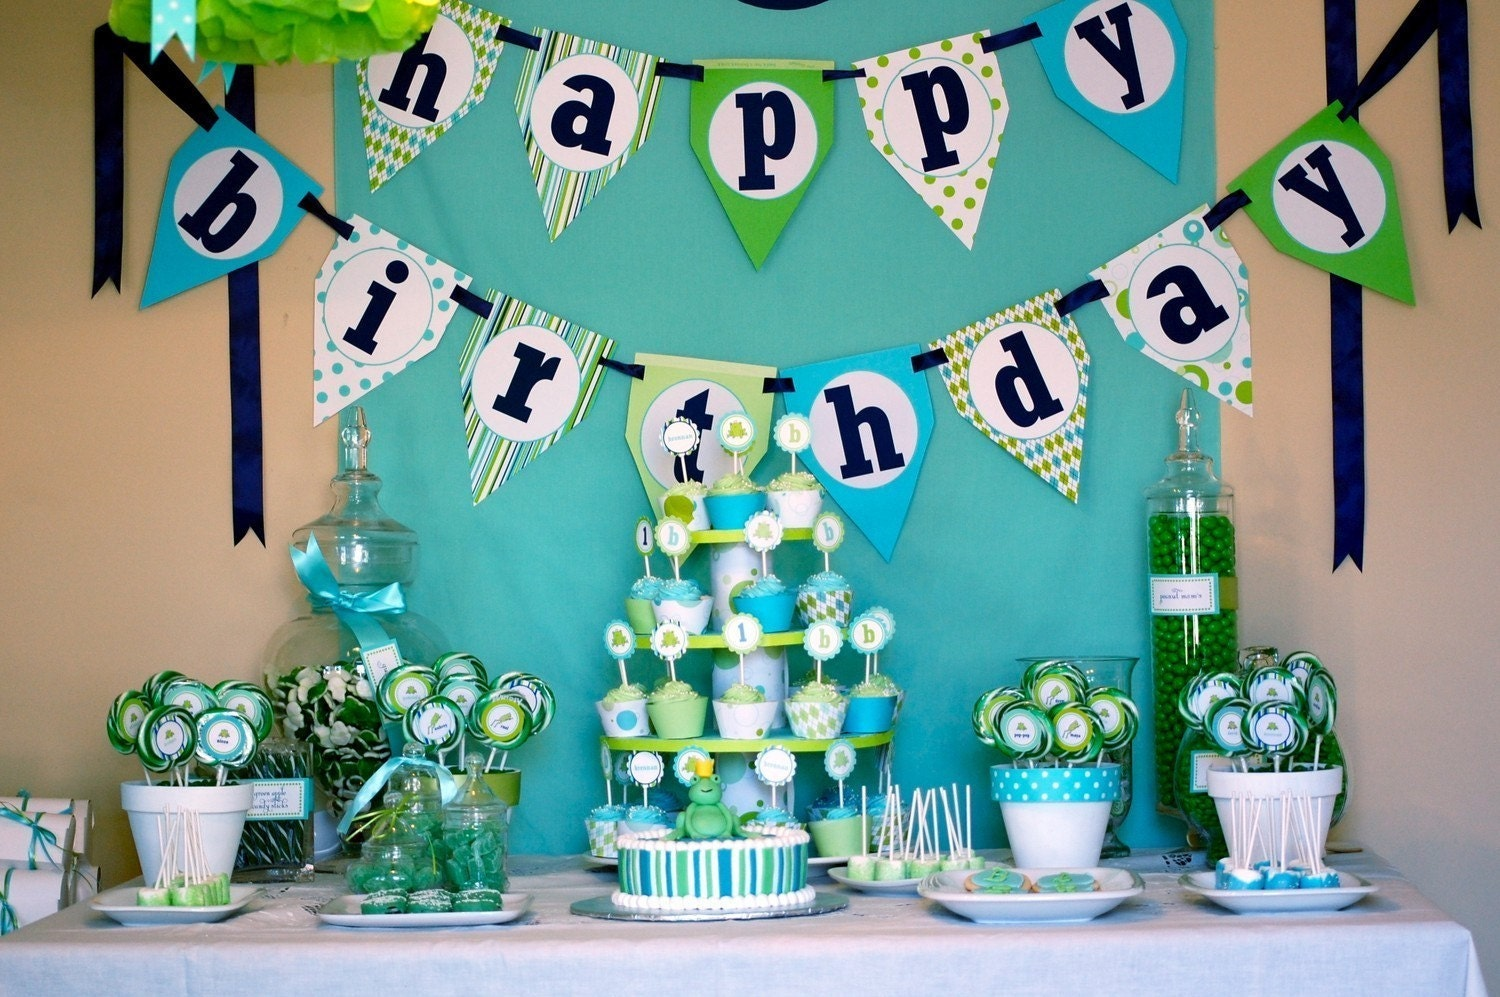 Birthday Decorations At Home Diy Image Inspiration of Cake and